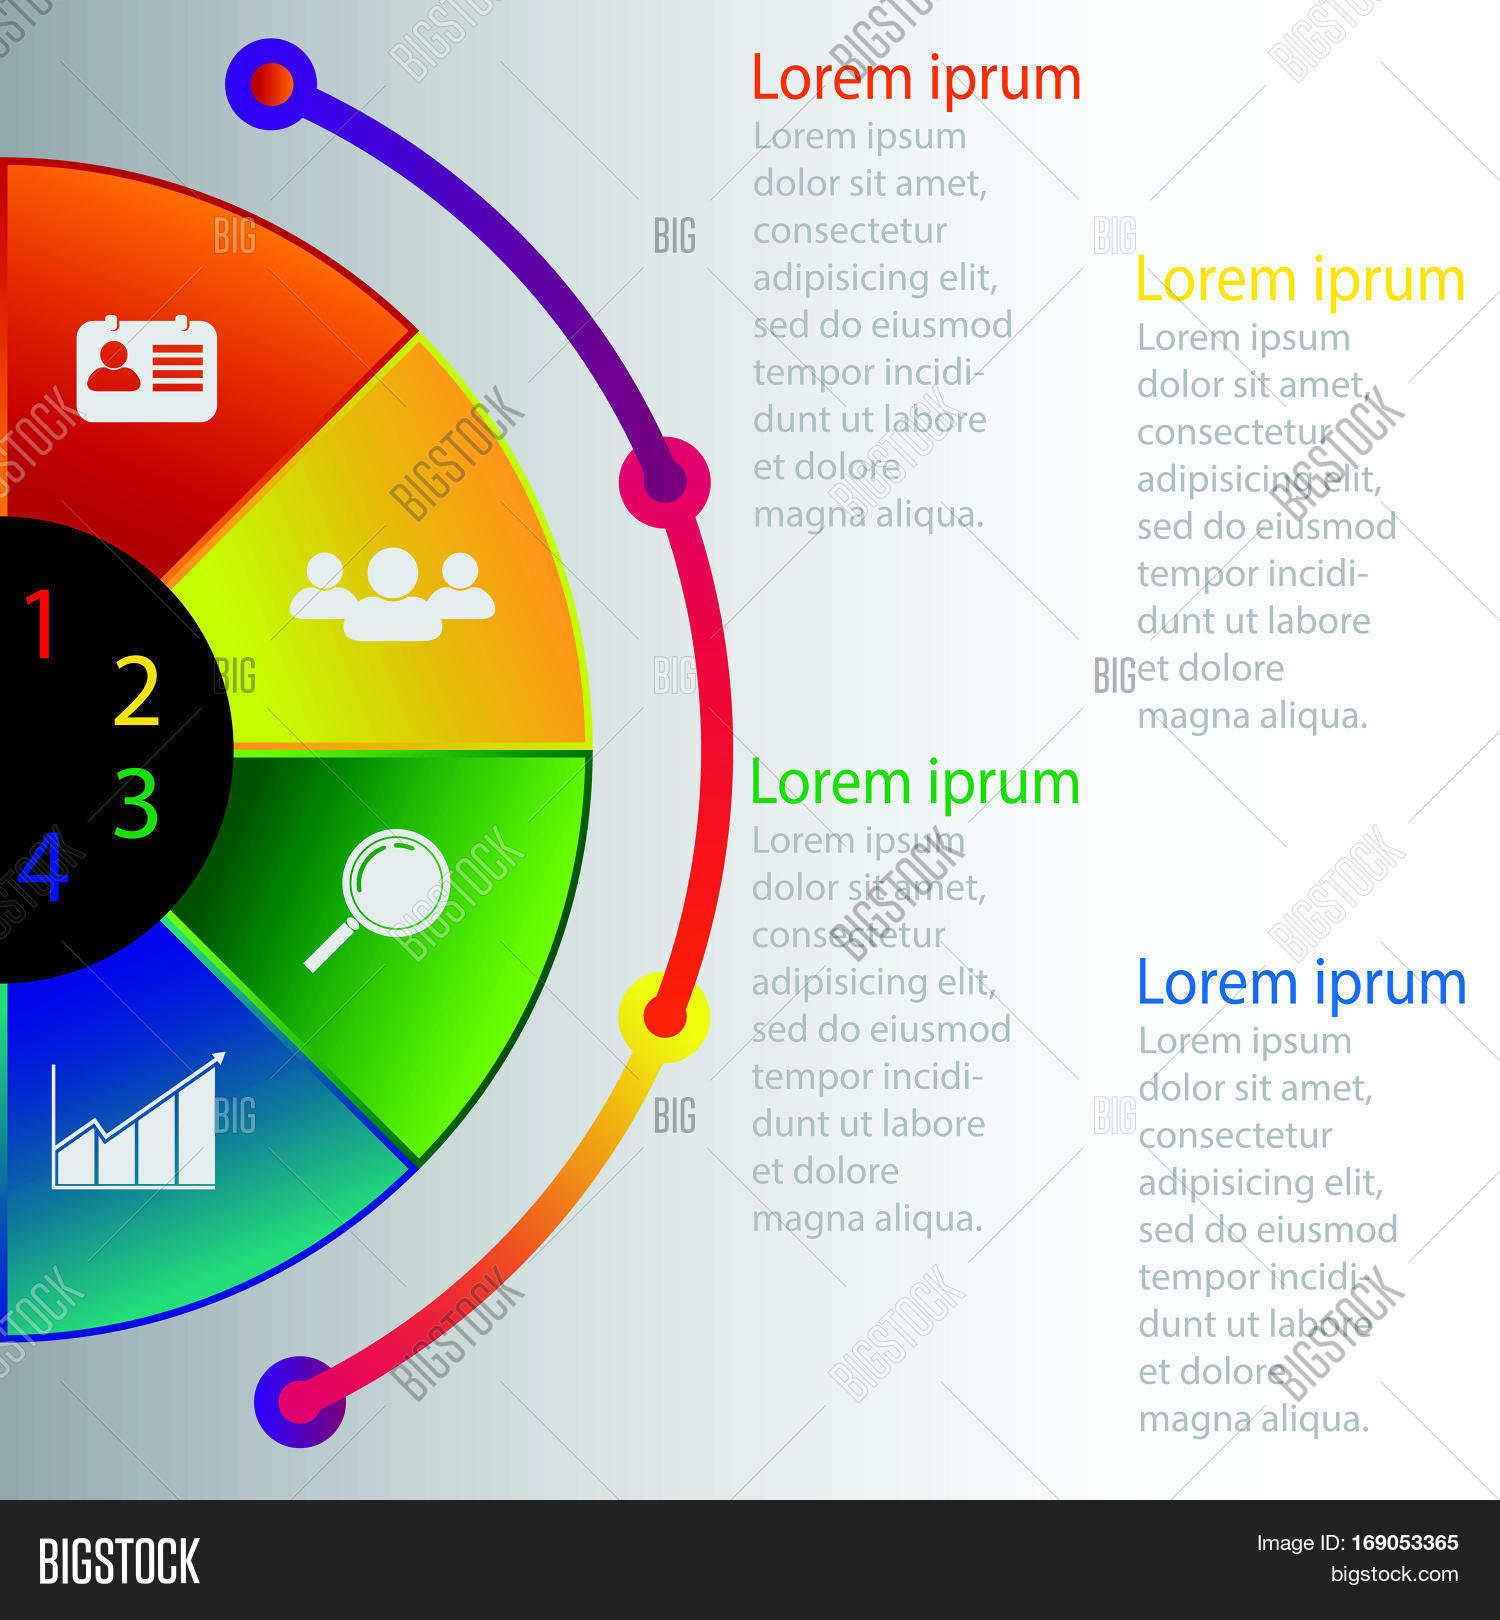 hight resolution of abstract 3d circular digital illustration infographic vector illustration can be used for workflow layout